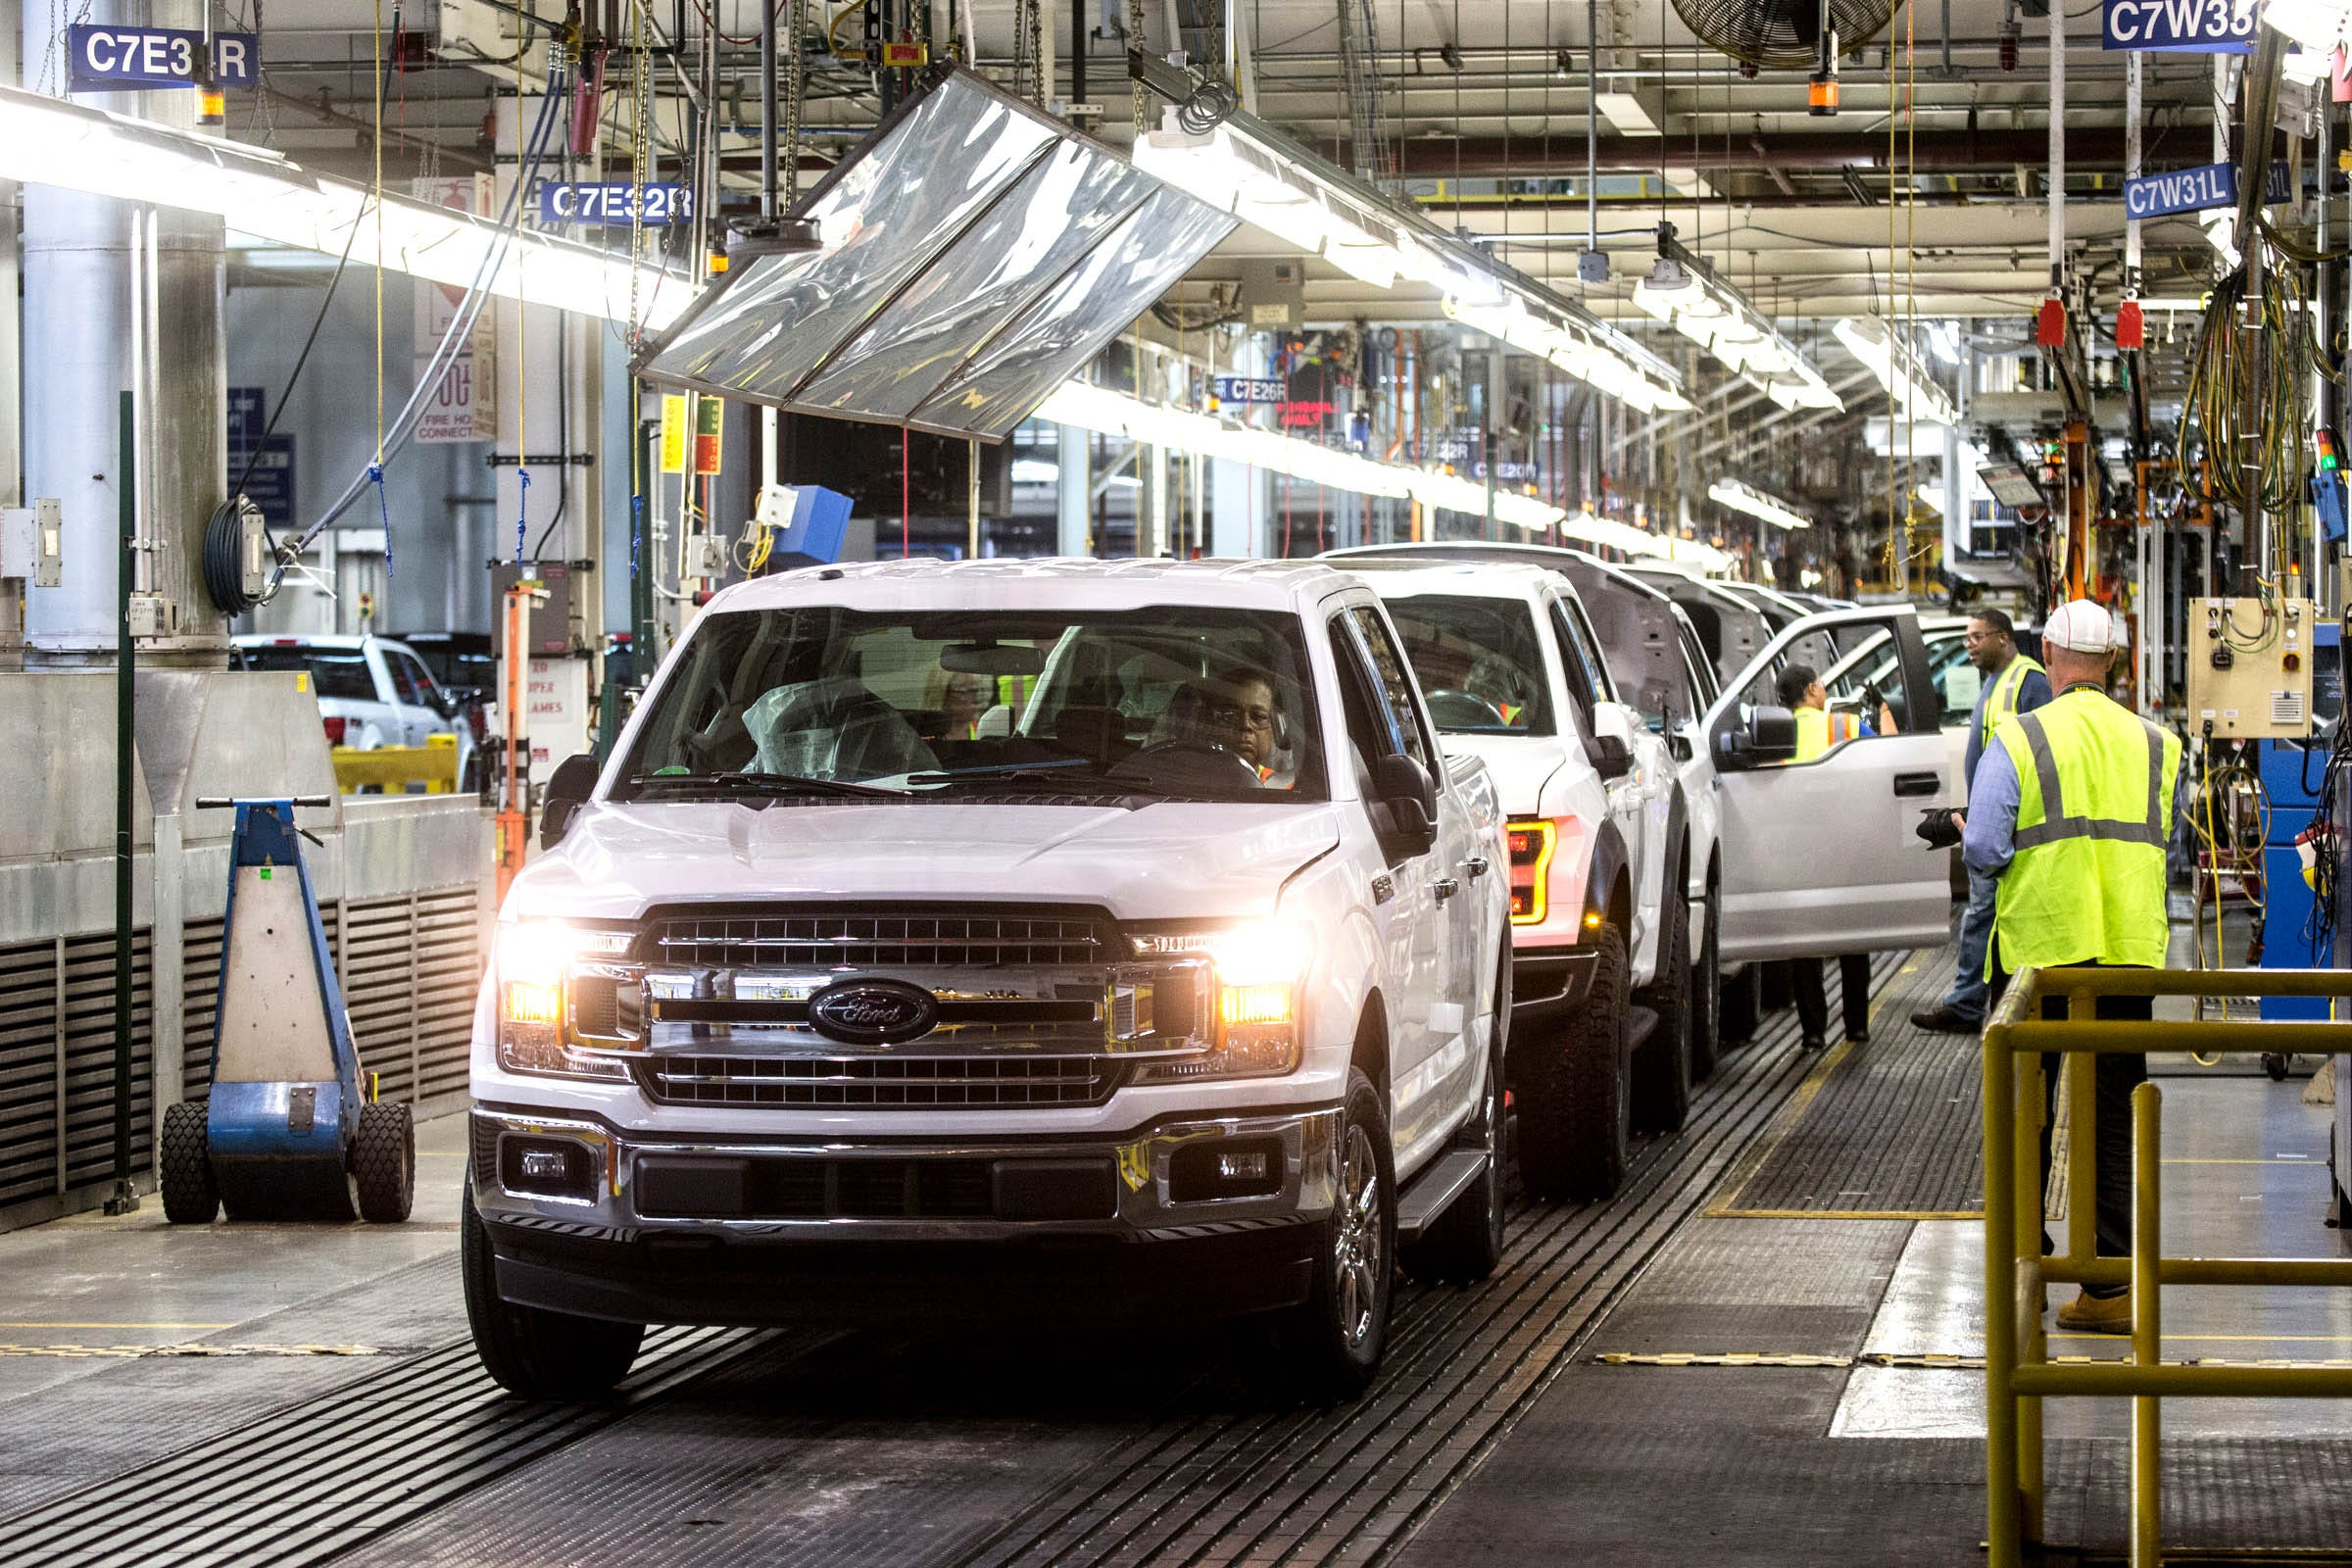 Ford reveals plan for $700M plant, jobs to build all-electric Ford F-150